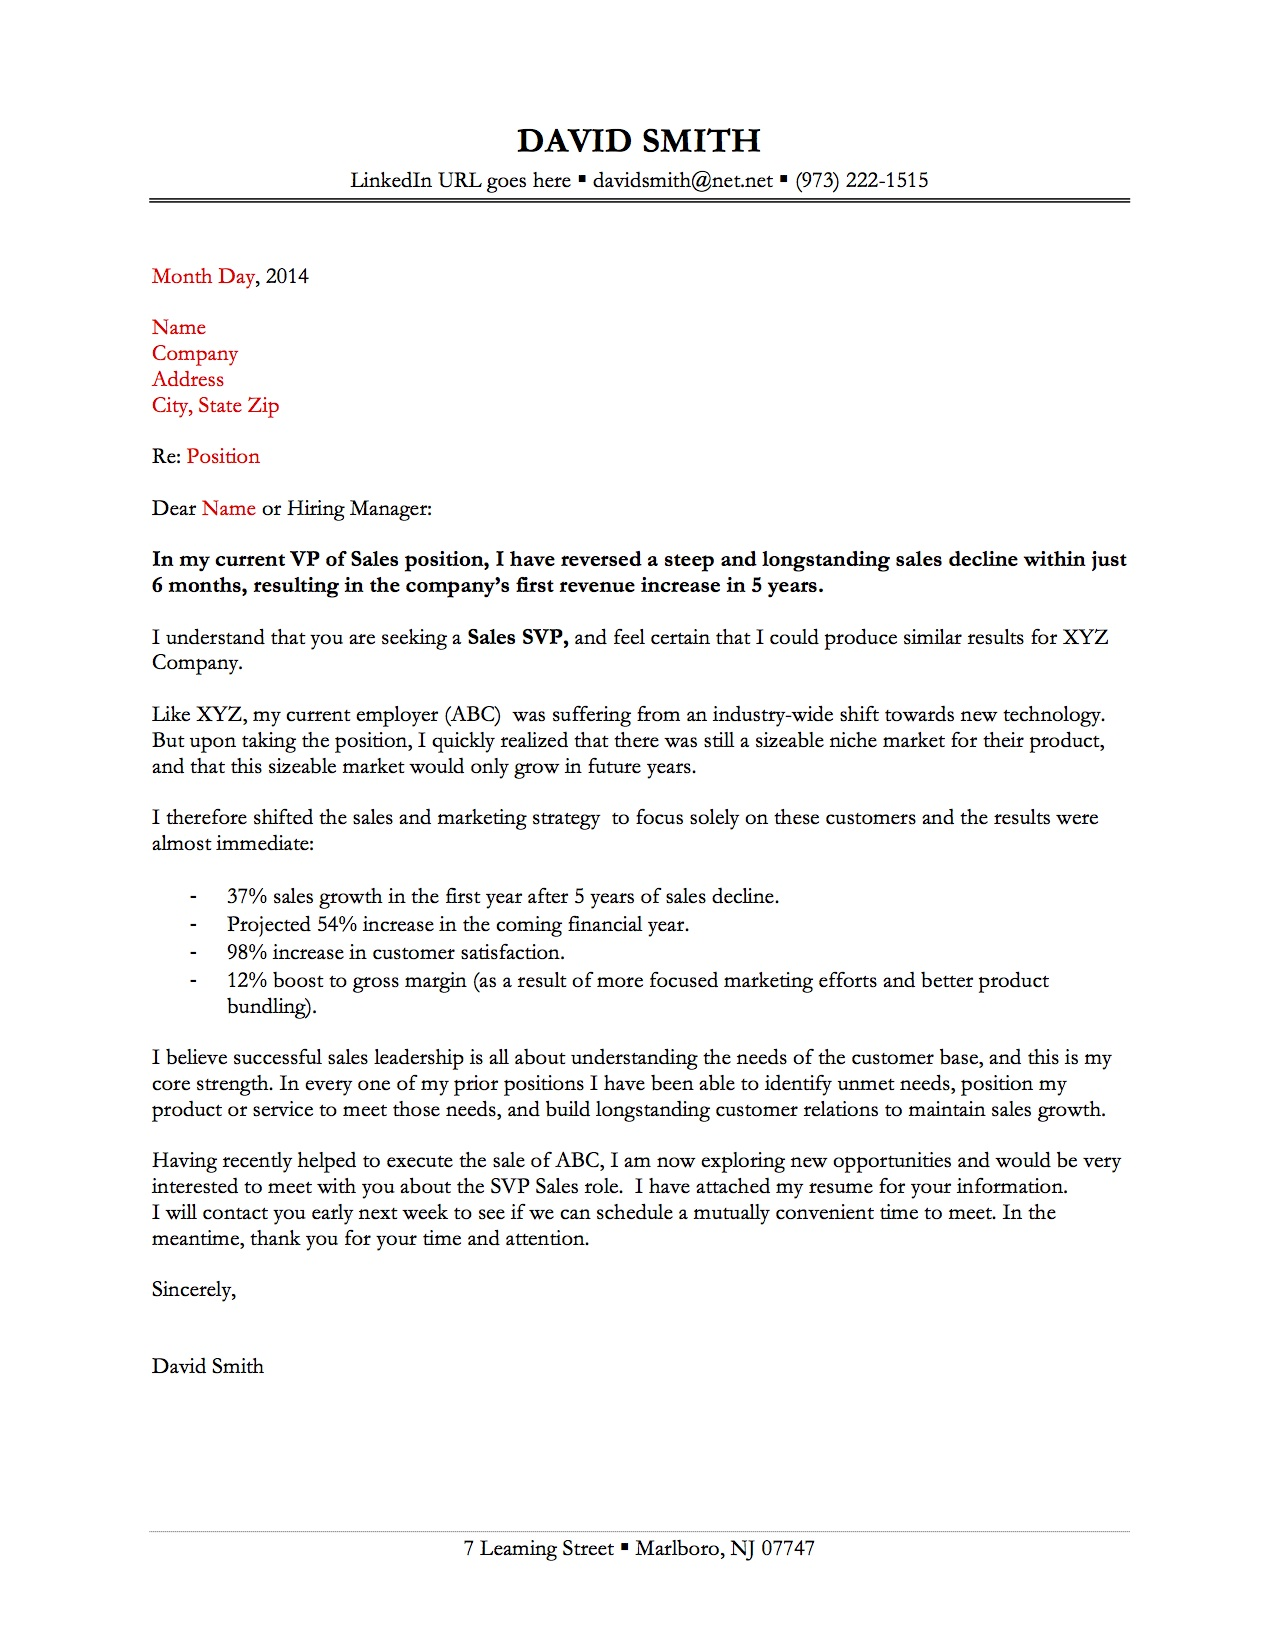 Two great cover letter examples blue sky resumes blog sample cover letter 2 altavistaventures